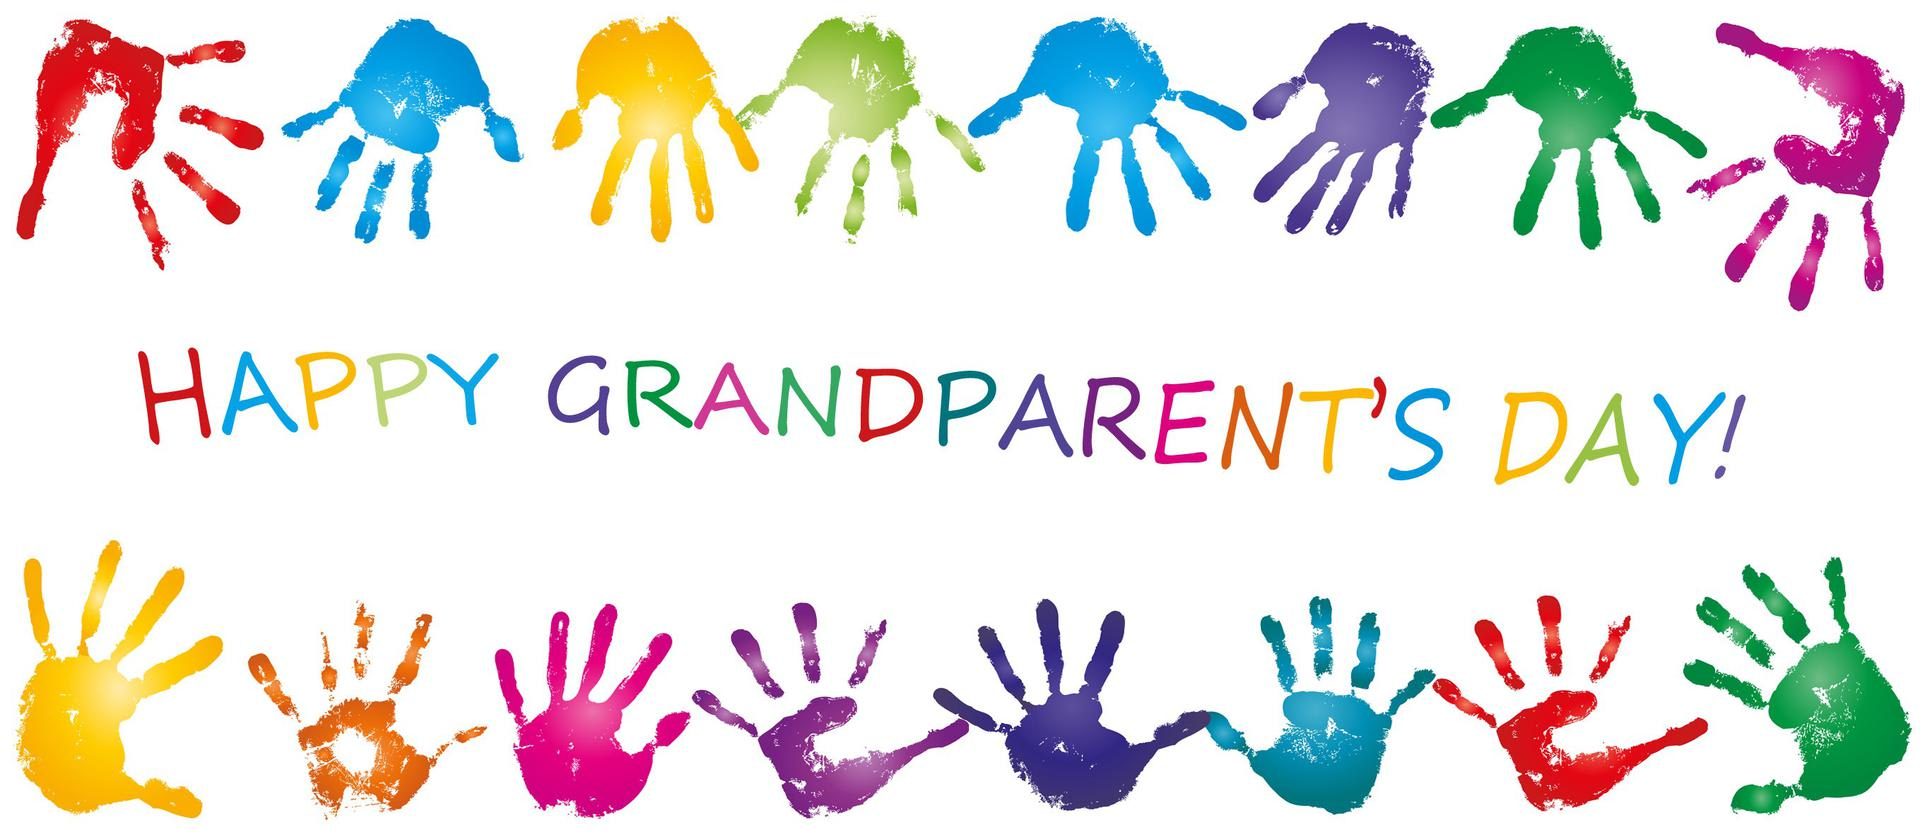 Happy Grandparents Day written with colored hand  prints all around  as a border